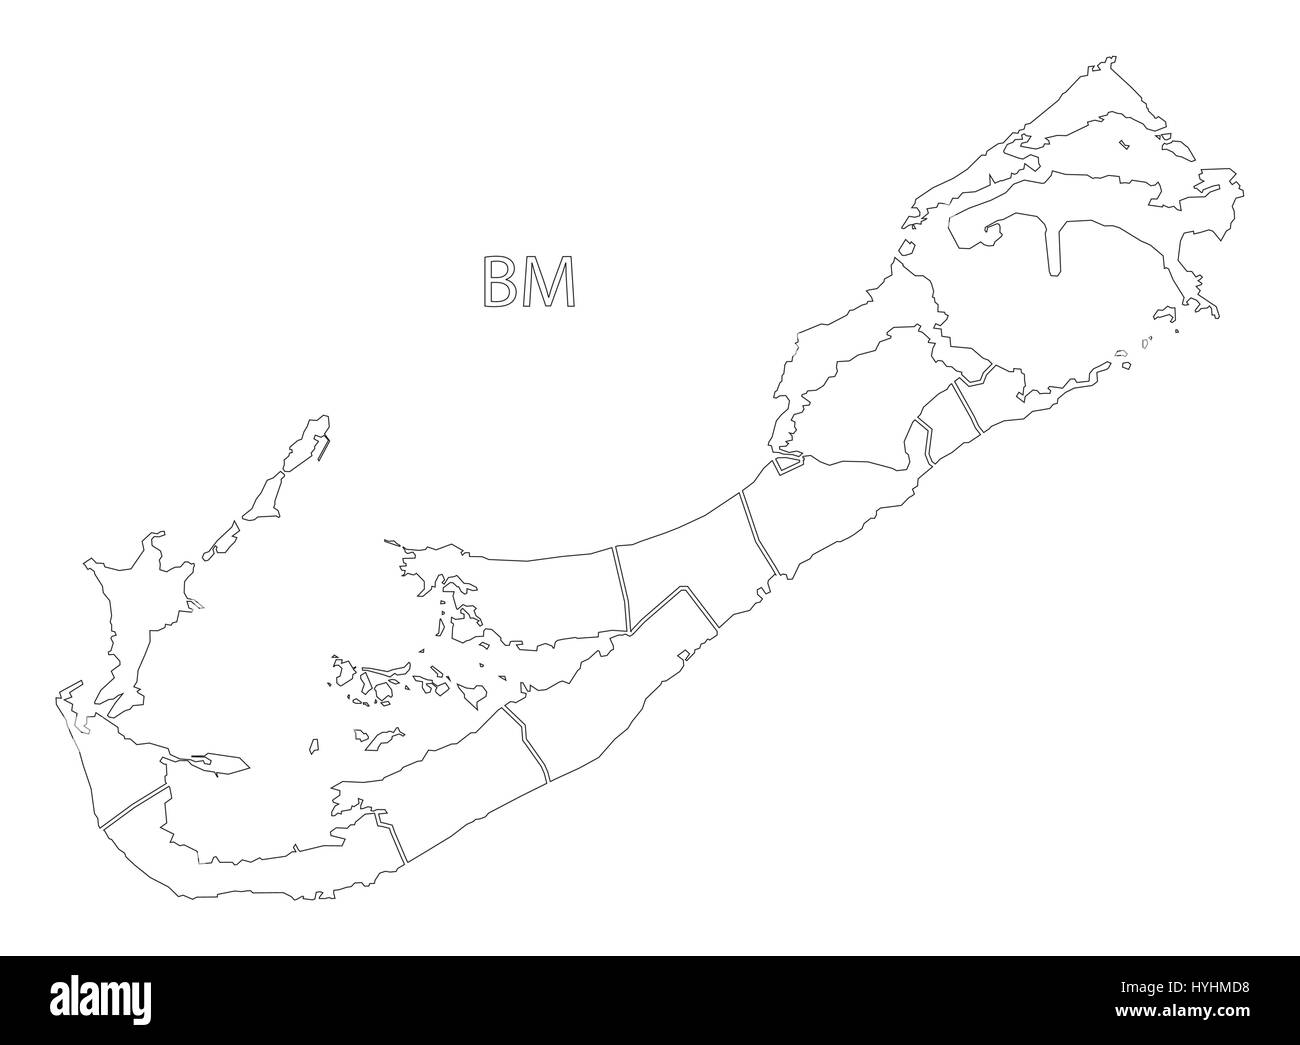 Bermuda outline silhouette map illustration with parishes Stock ...